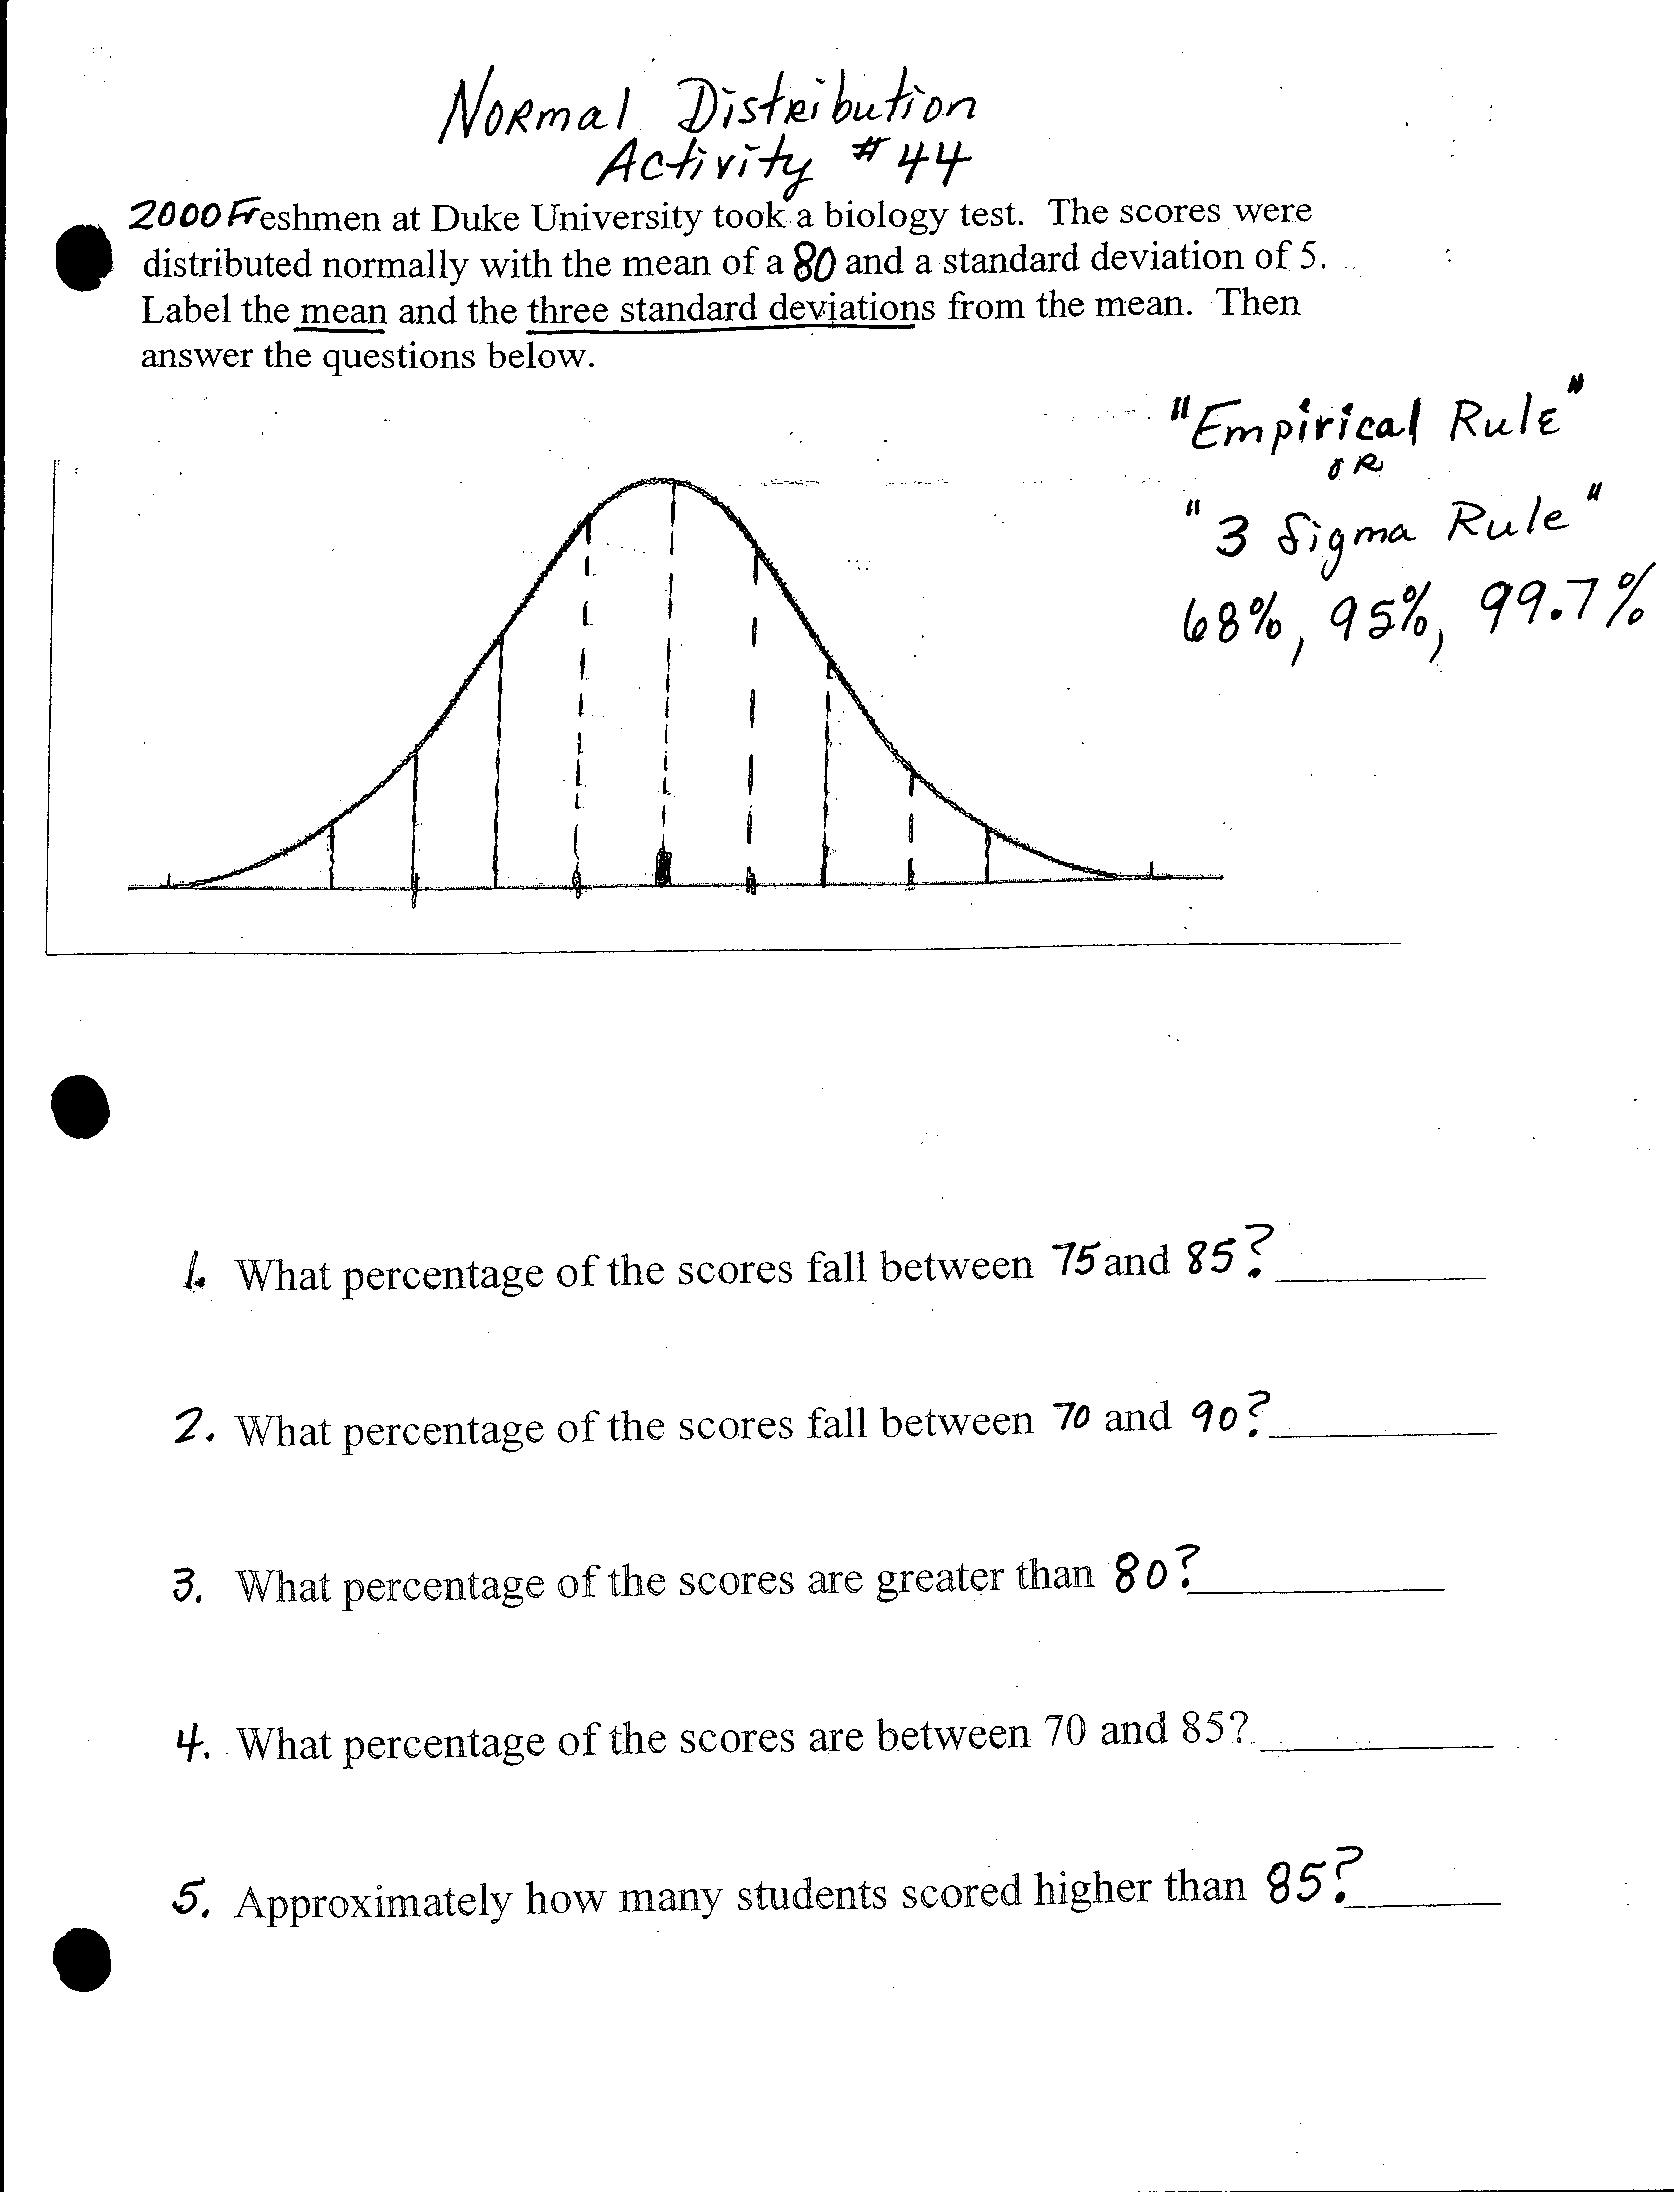 Worksheets Normal Distribution Worksheet normal distribution worksheet free worksheets library download on name answer key